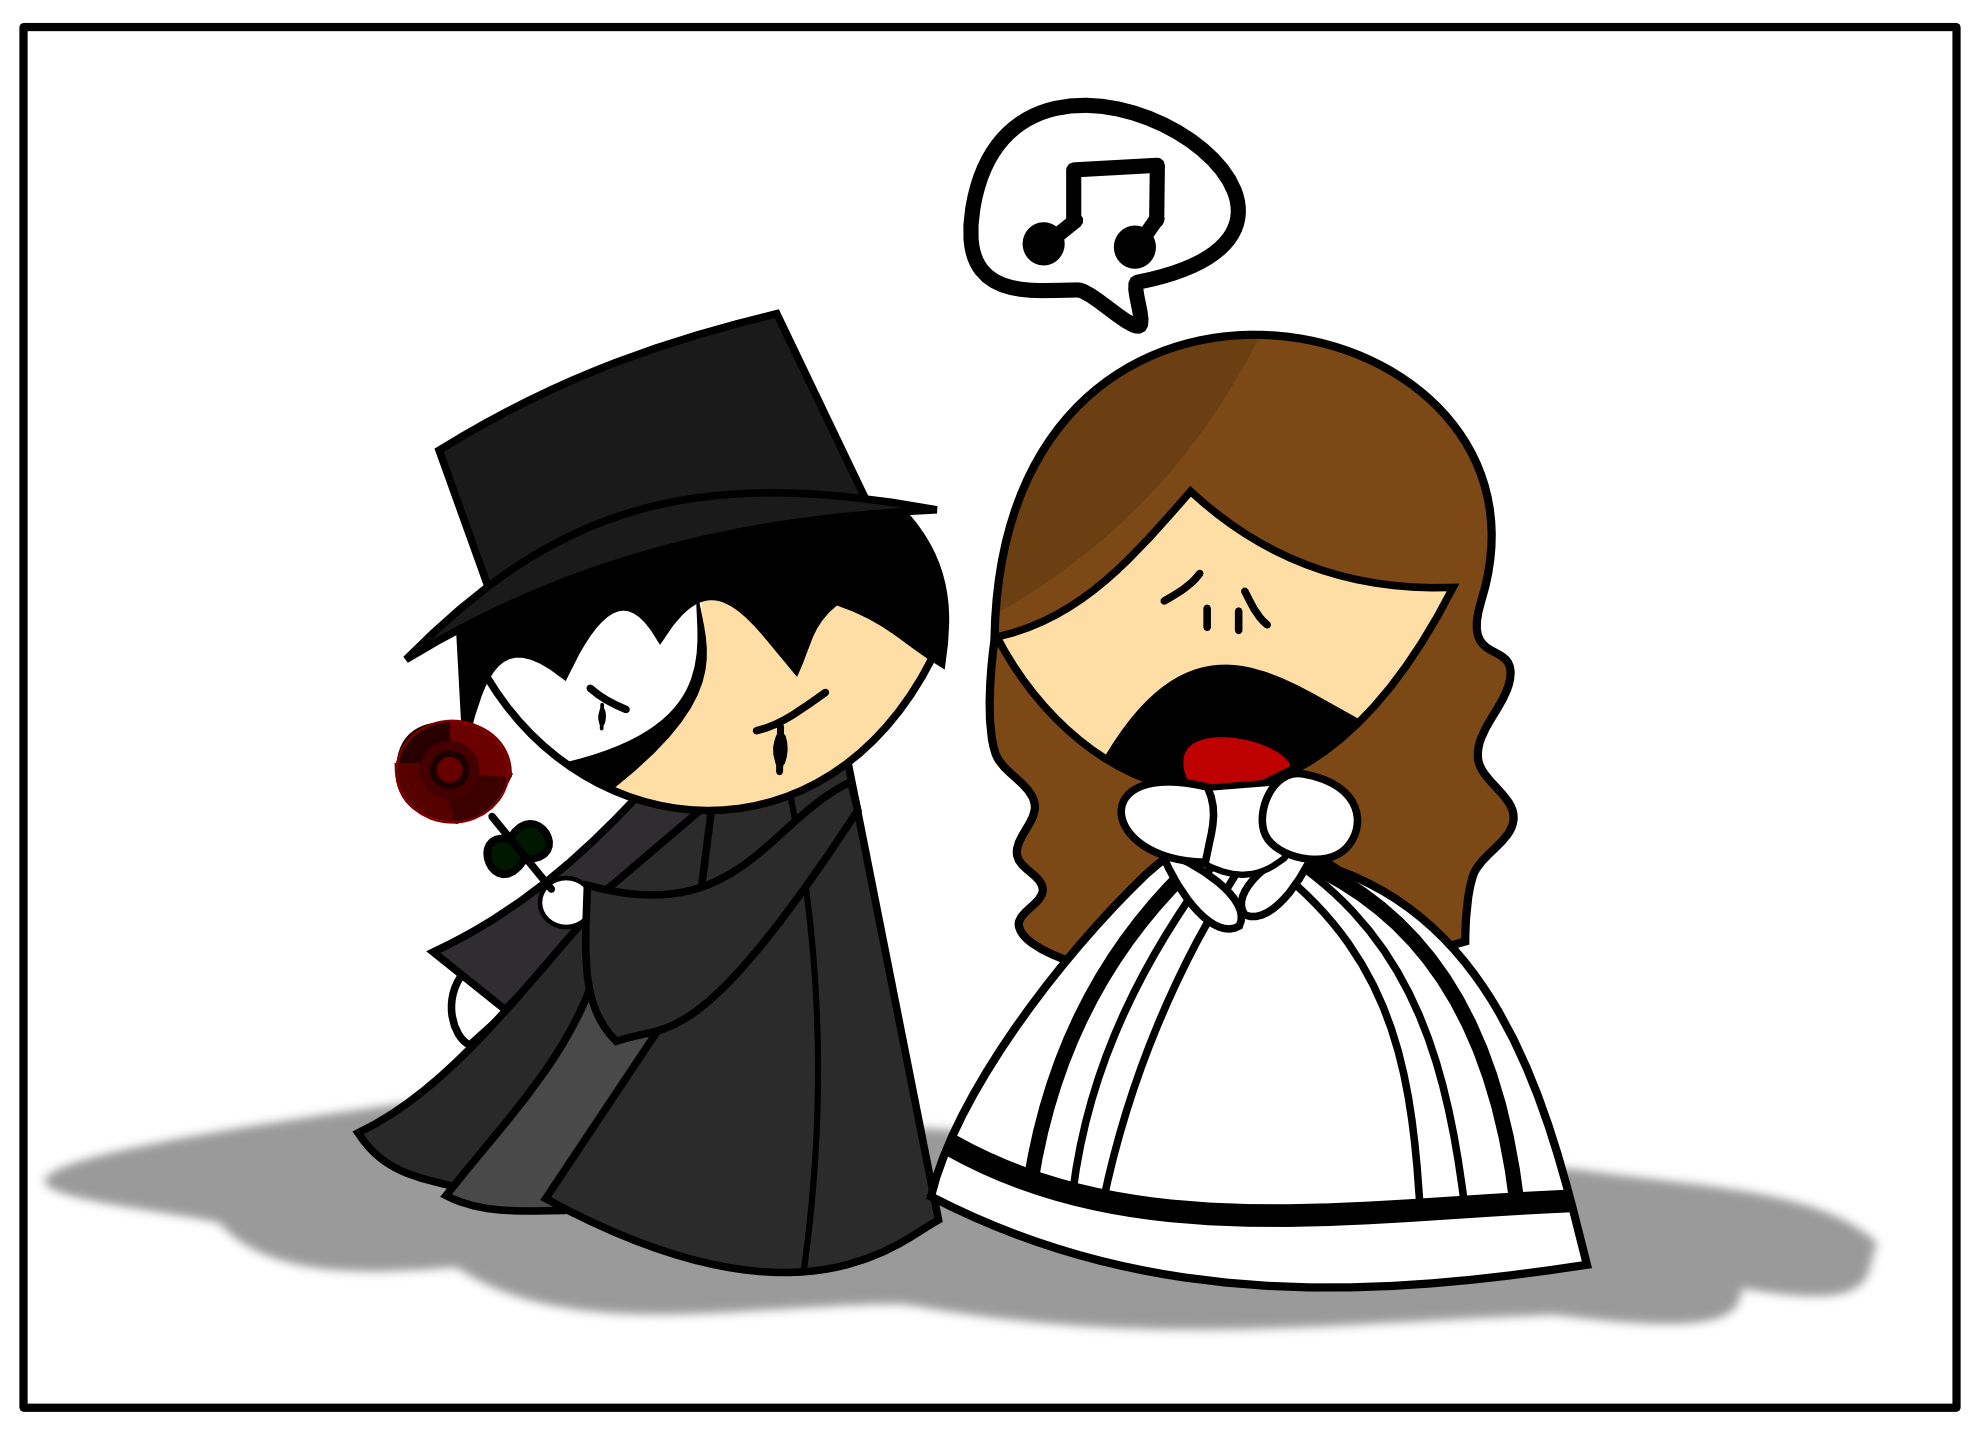 Phantom of the opera clipart free.